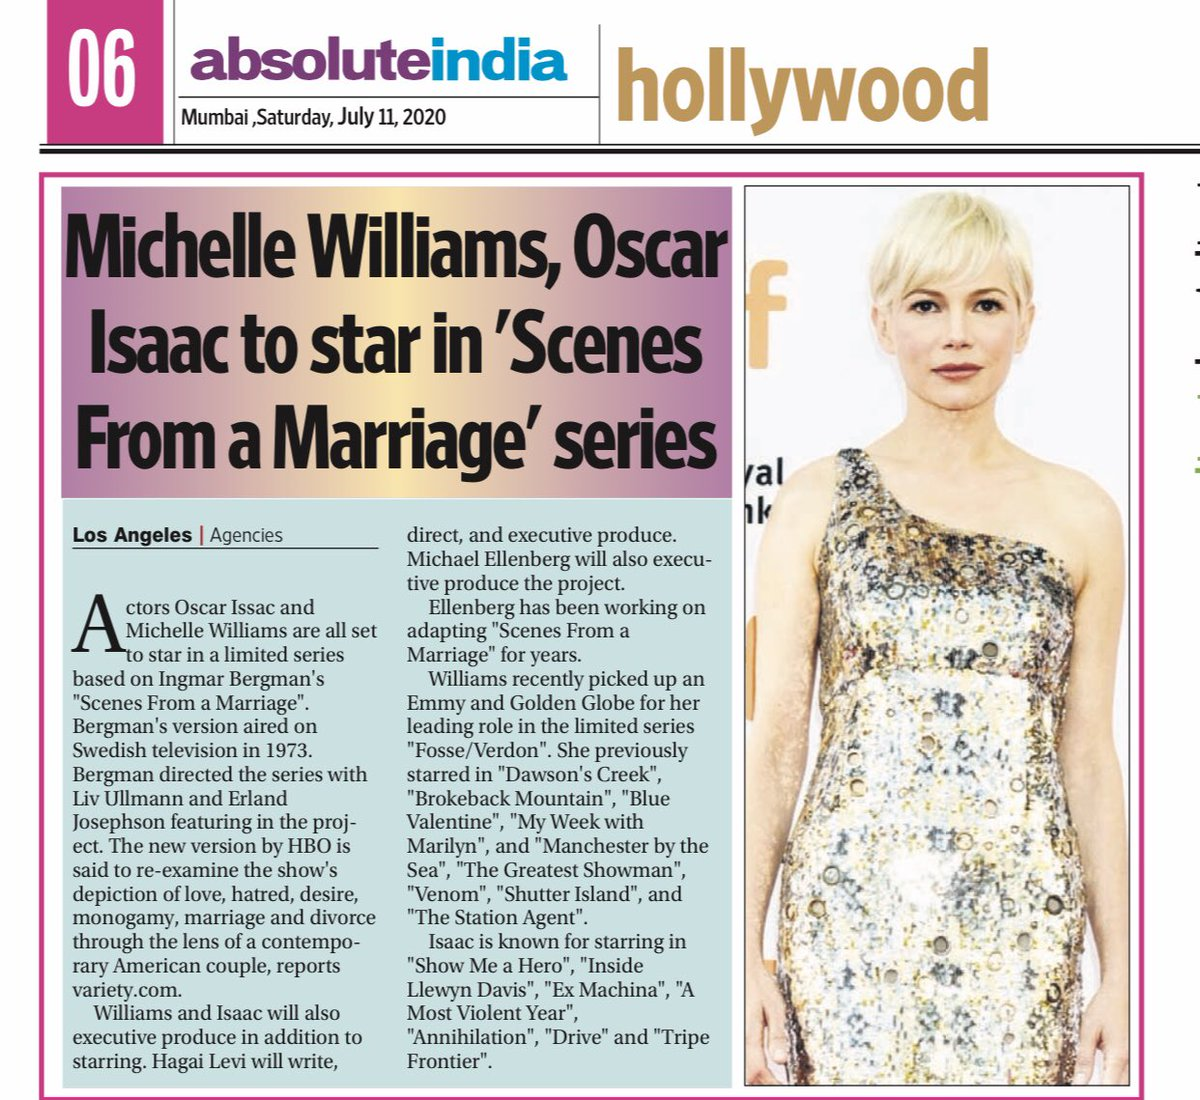 #michellewilliams #Hollywood https://t.co/hX44oe4RTG